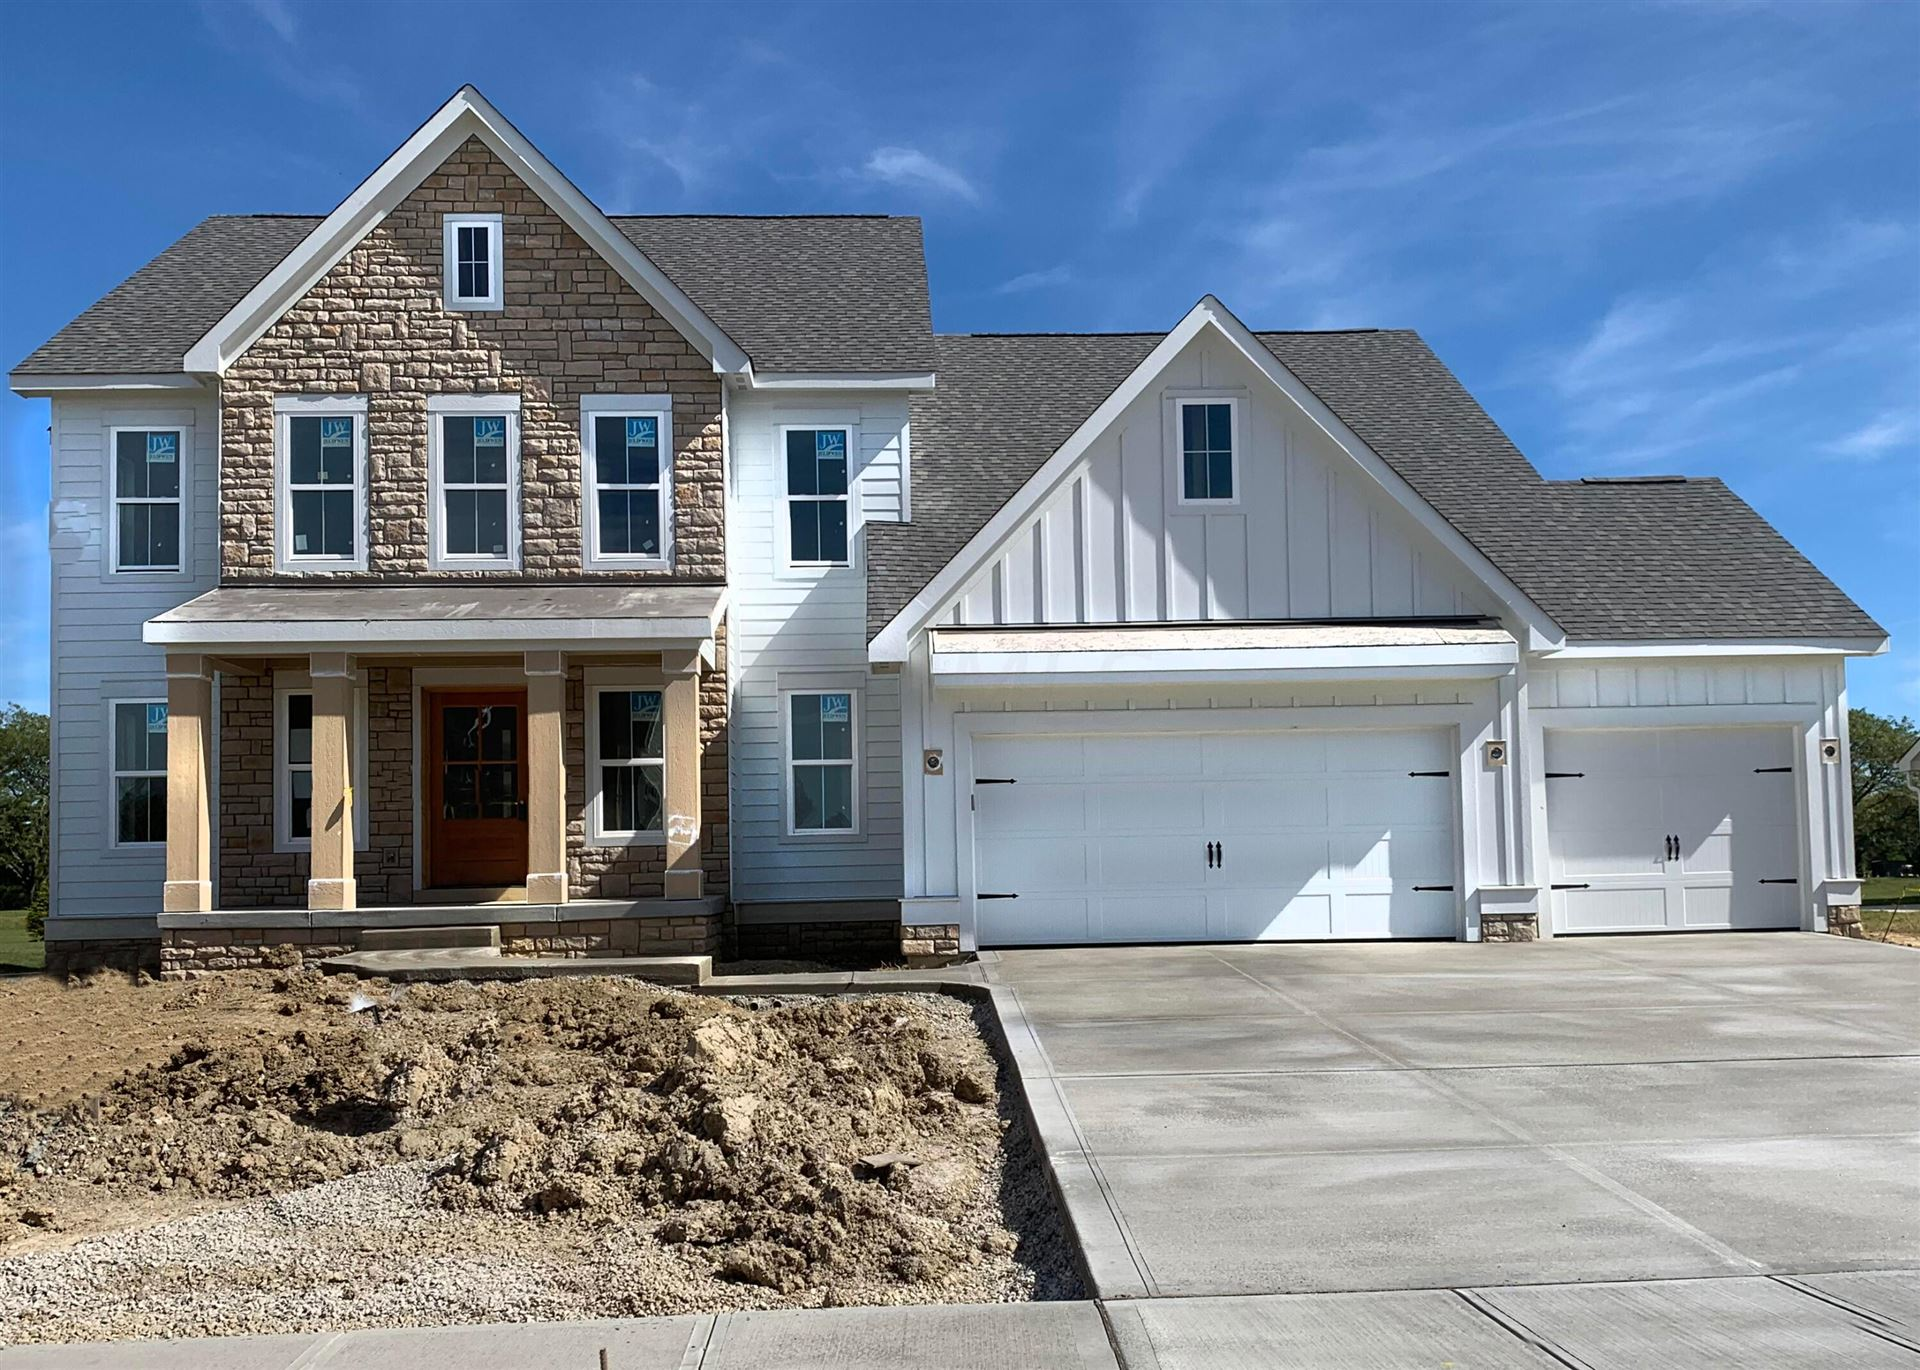 Photo of 2701 Voss Drive, Delaware, OH 43015 (MLS # 221036681)